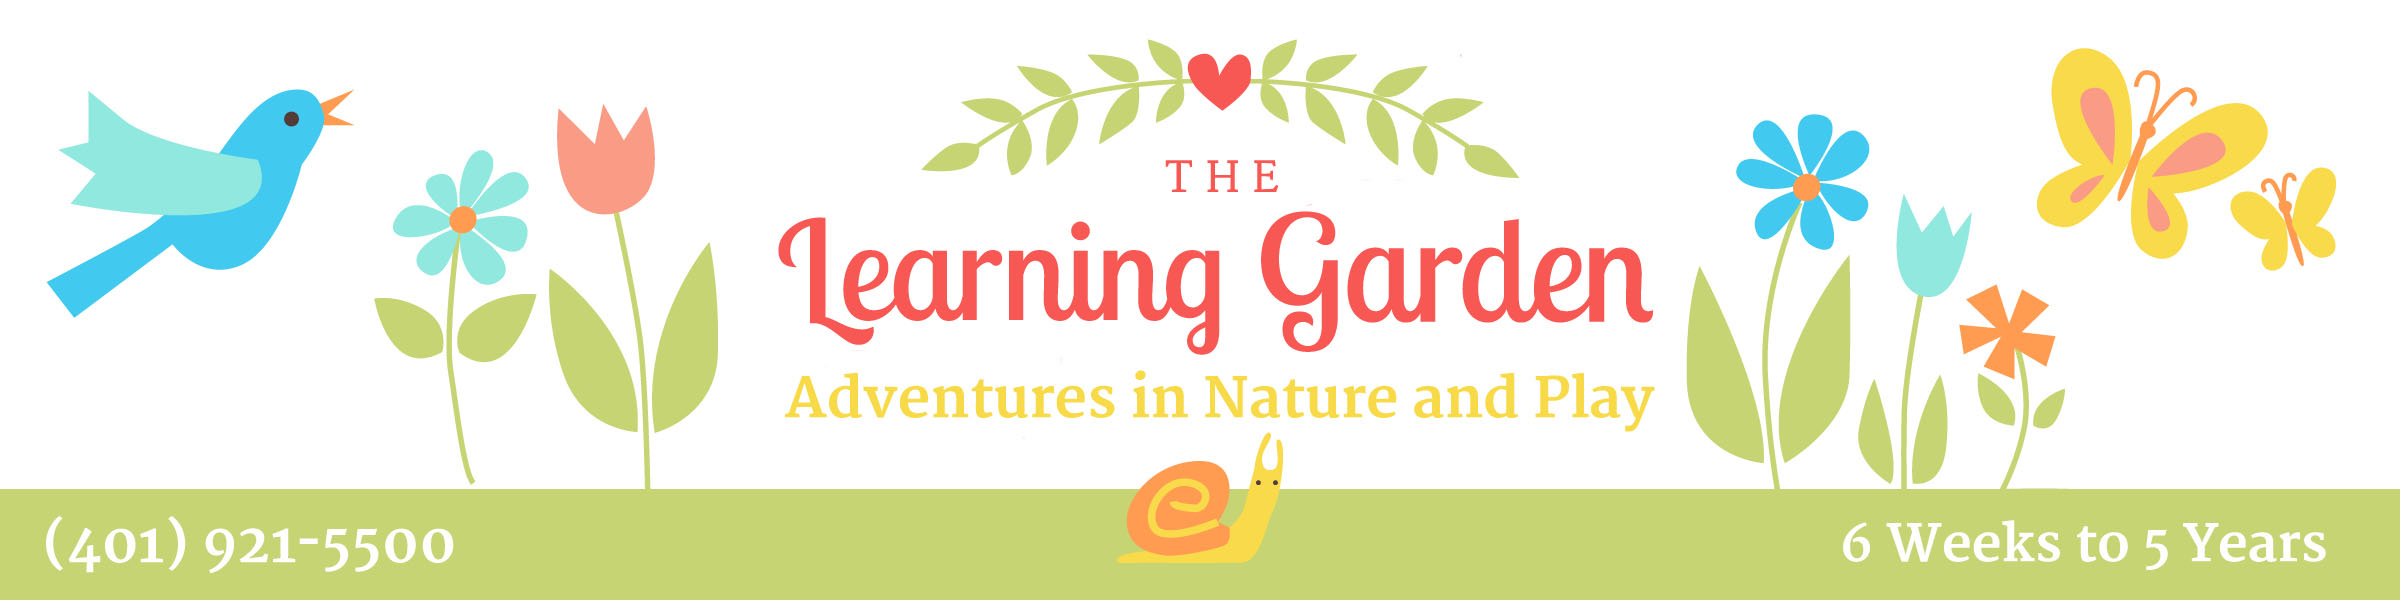 The Learning Garden, Inc.